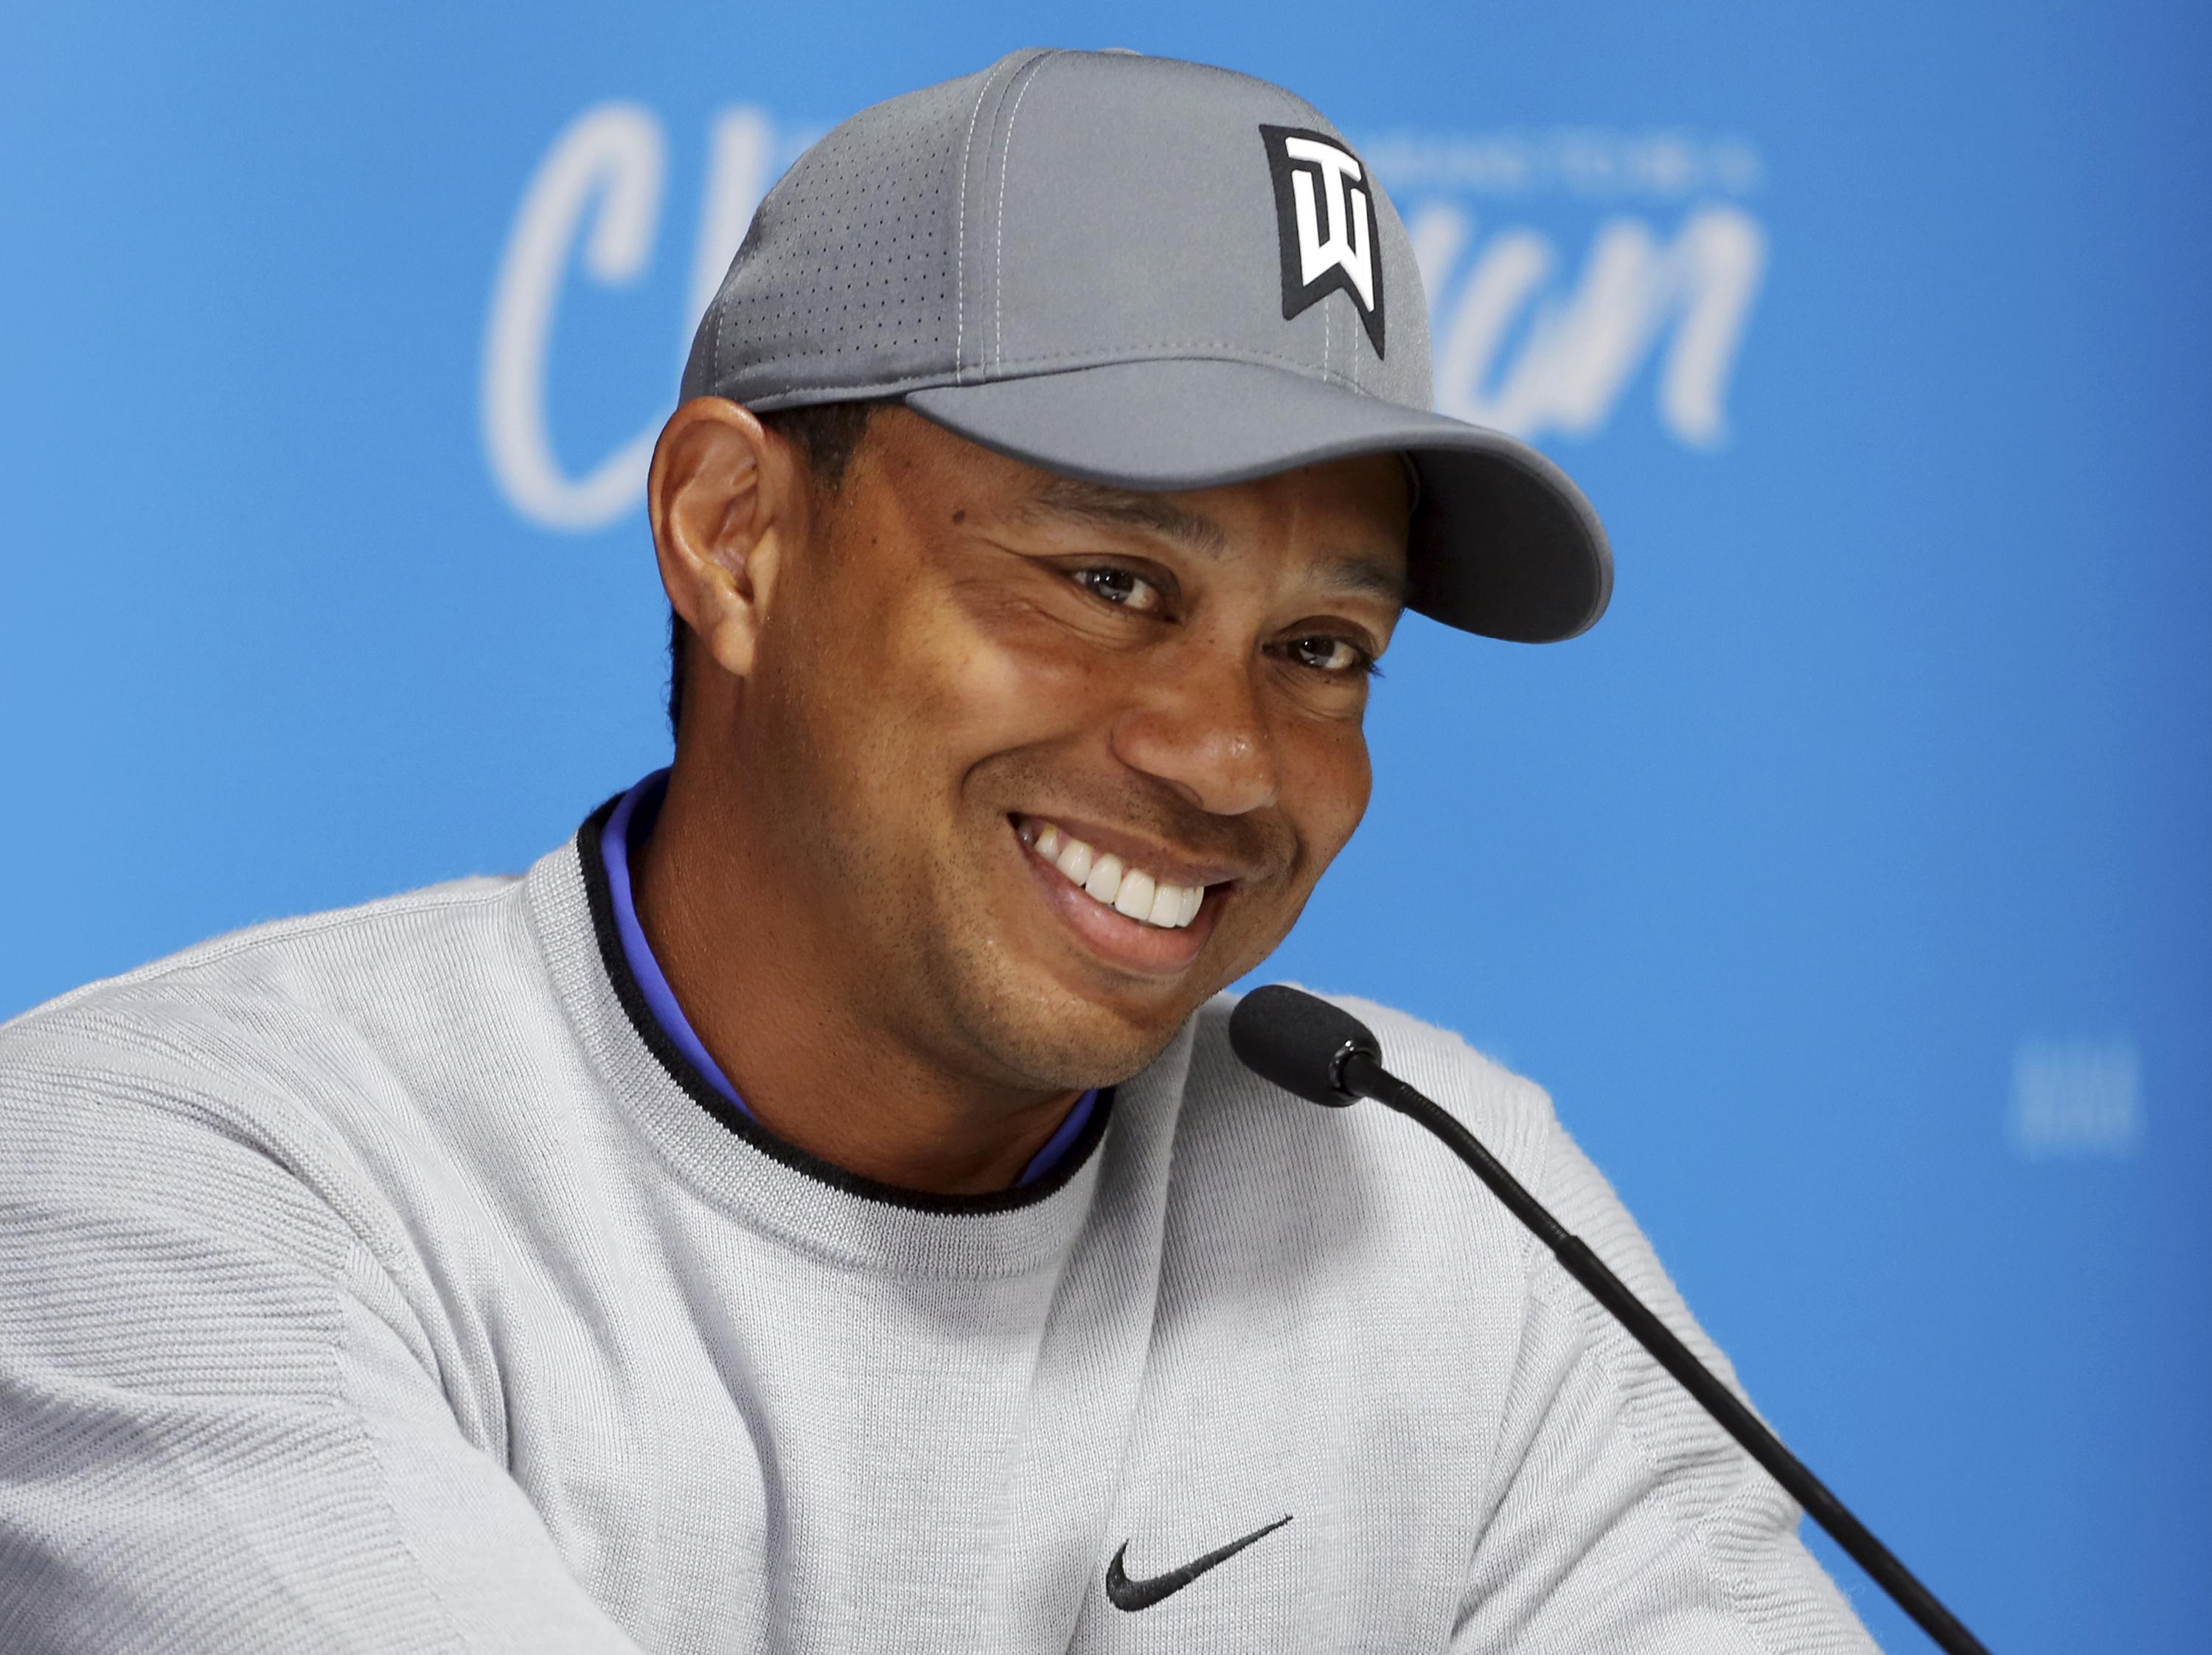 Tiger Woods odds golf betting